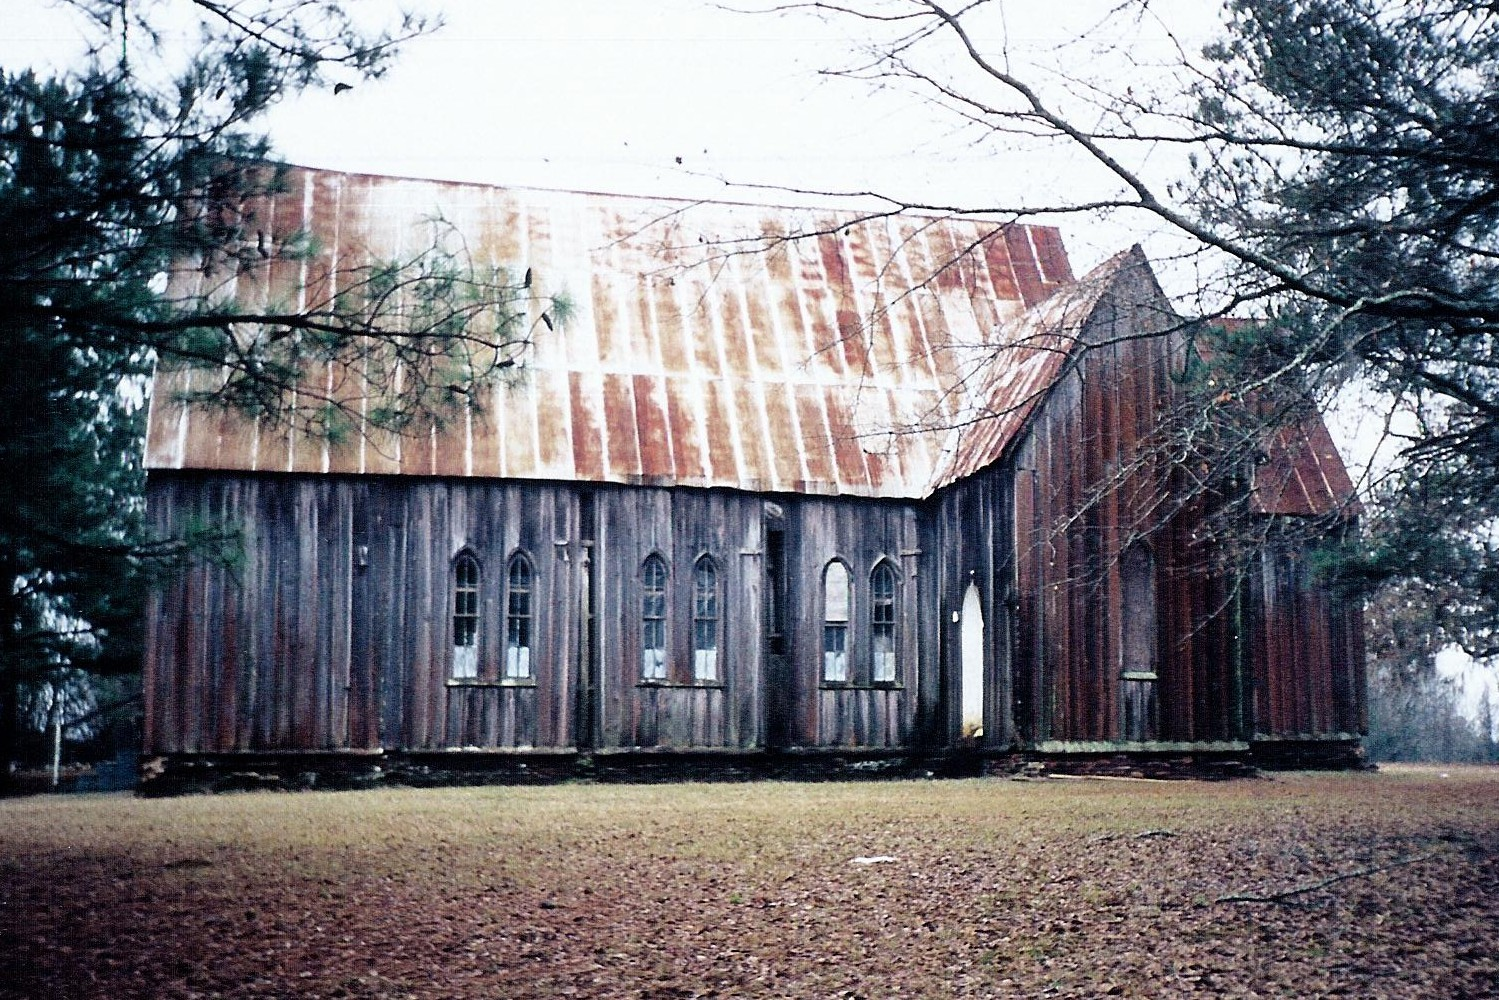 Cahawba, Alabama